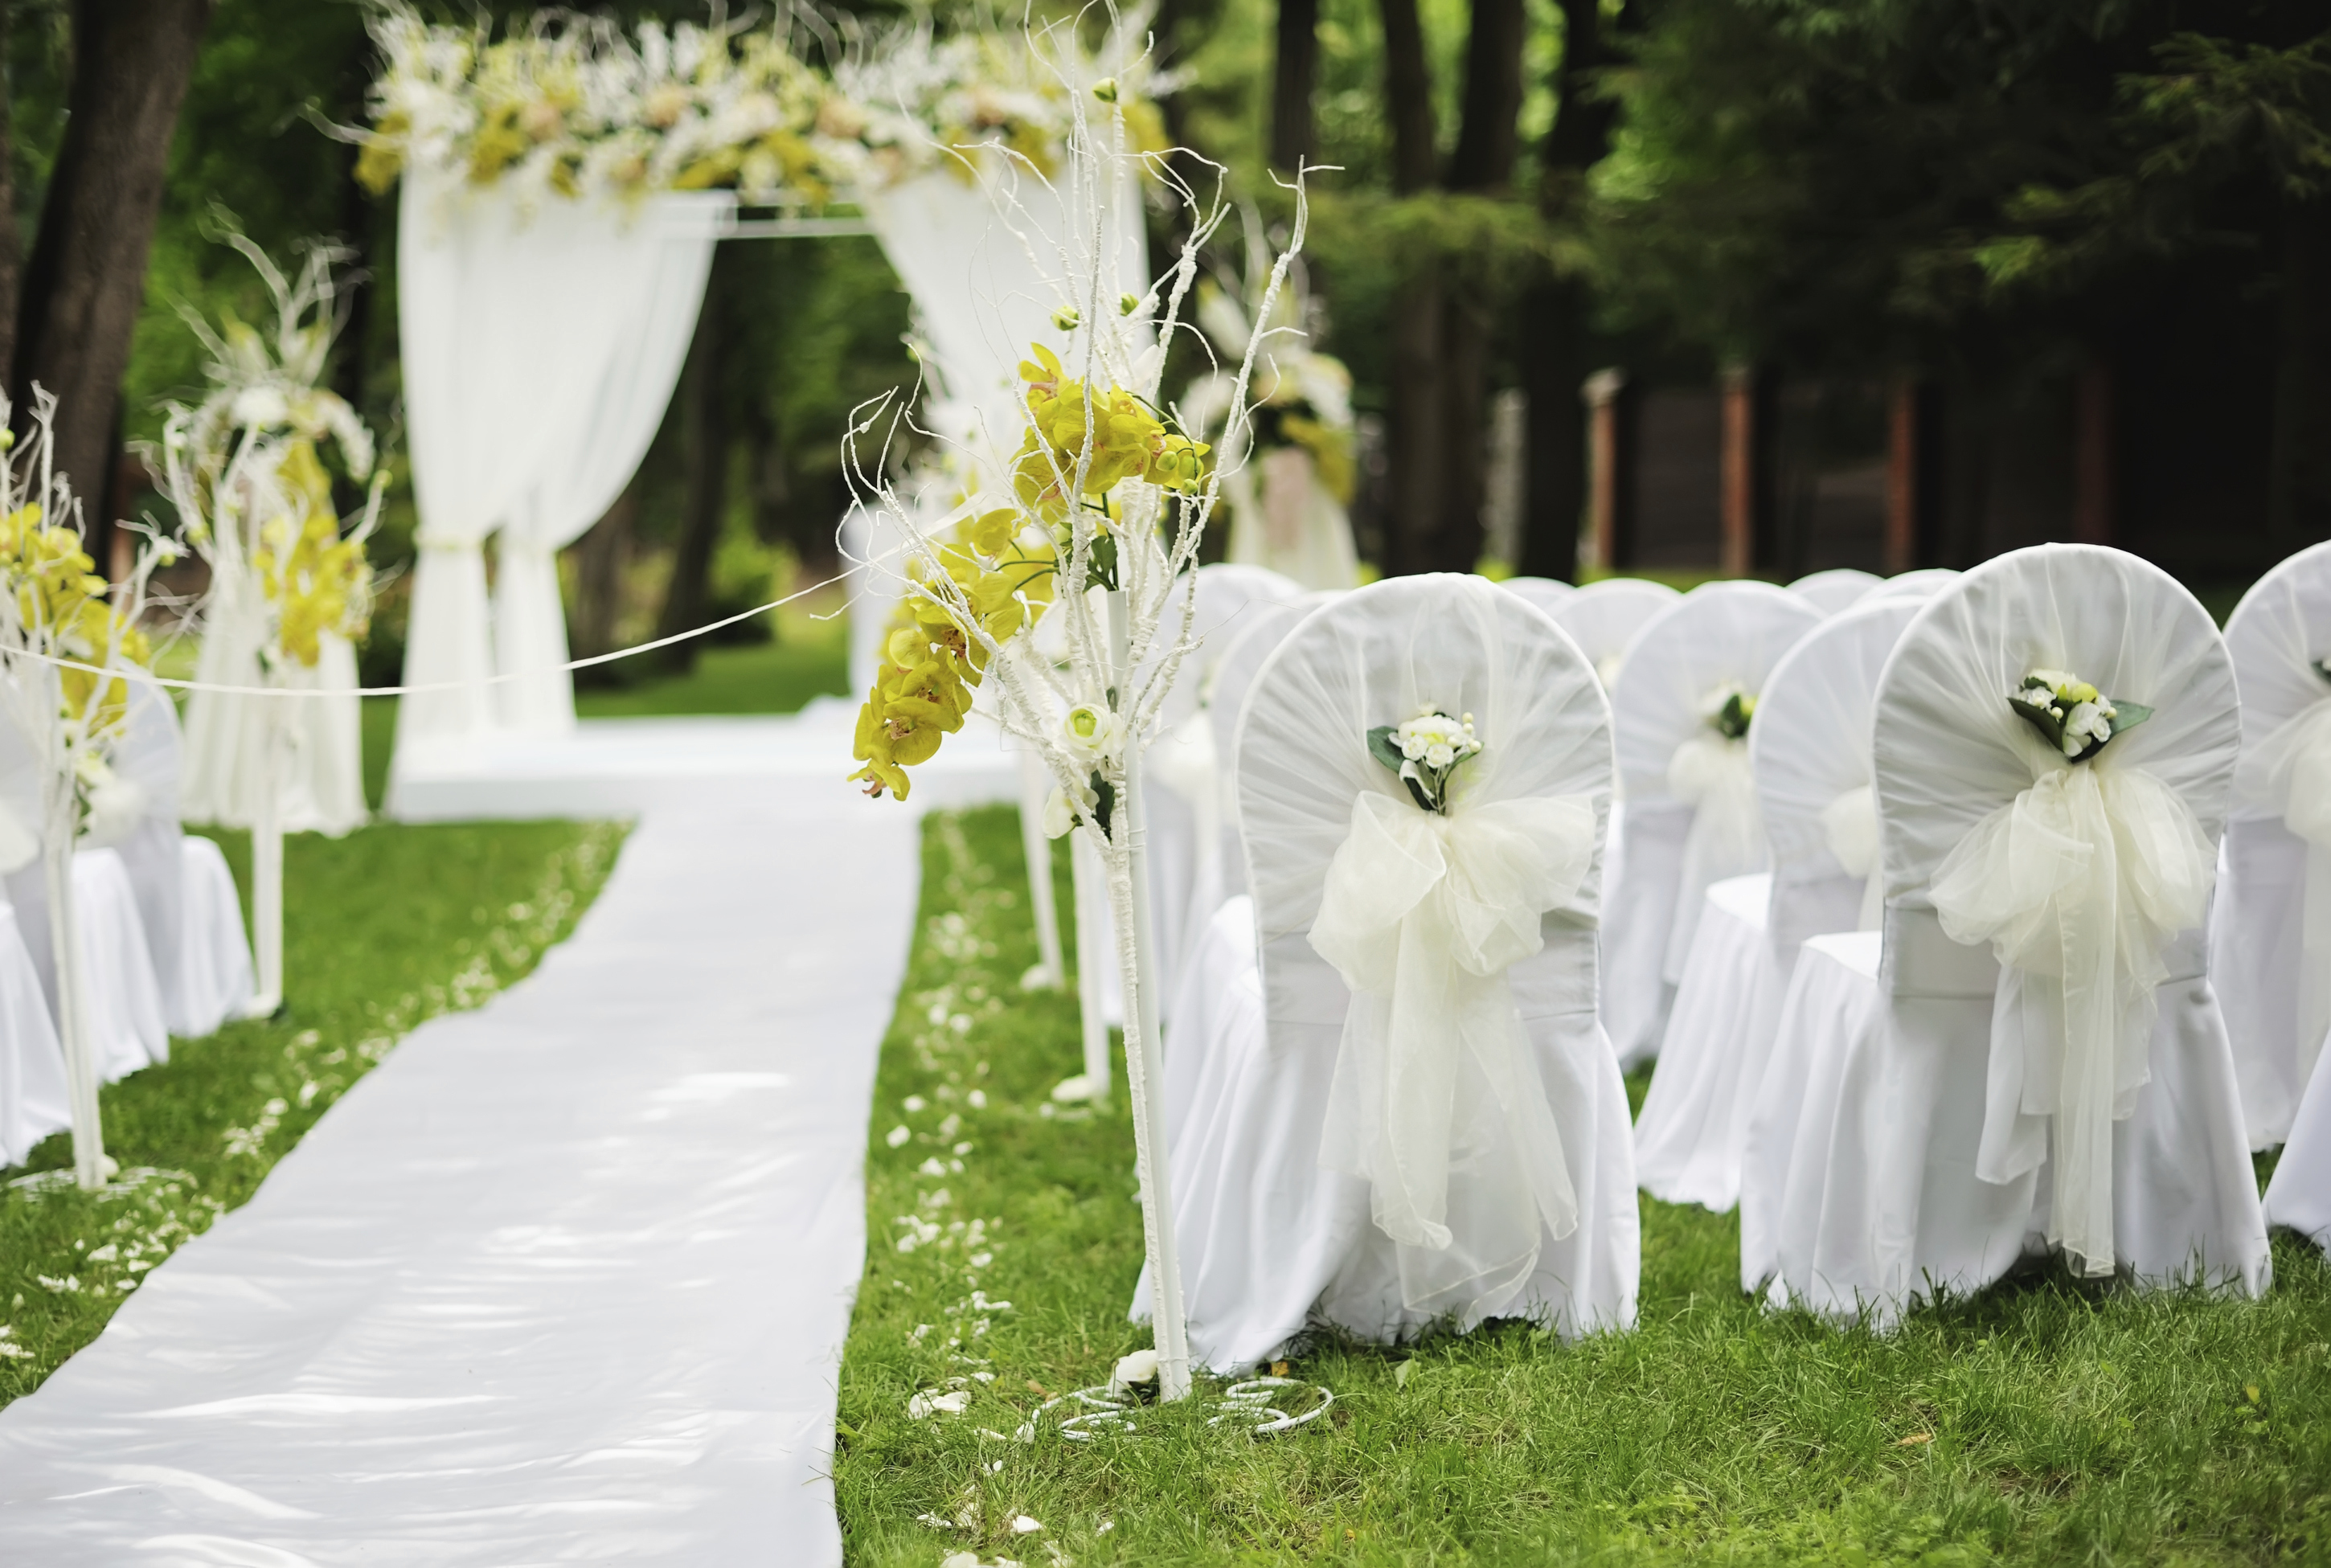 lifestyle home wedding covers design harlow chair thistle aisle diy